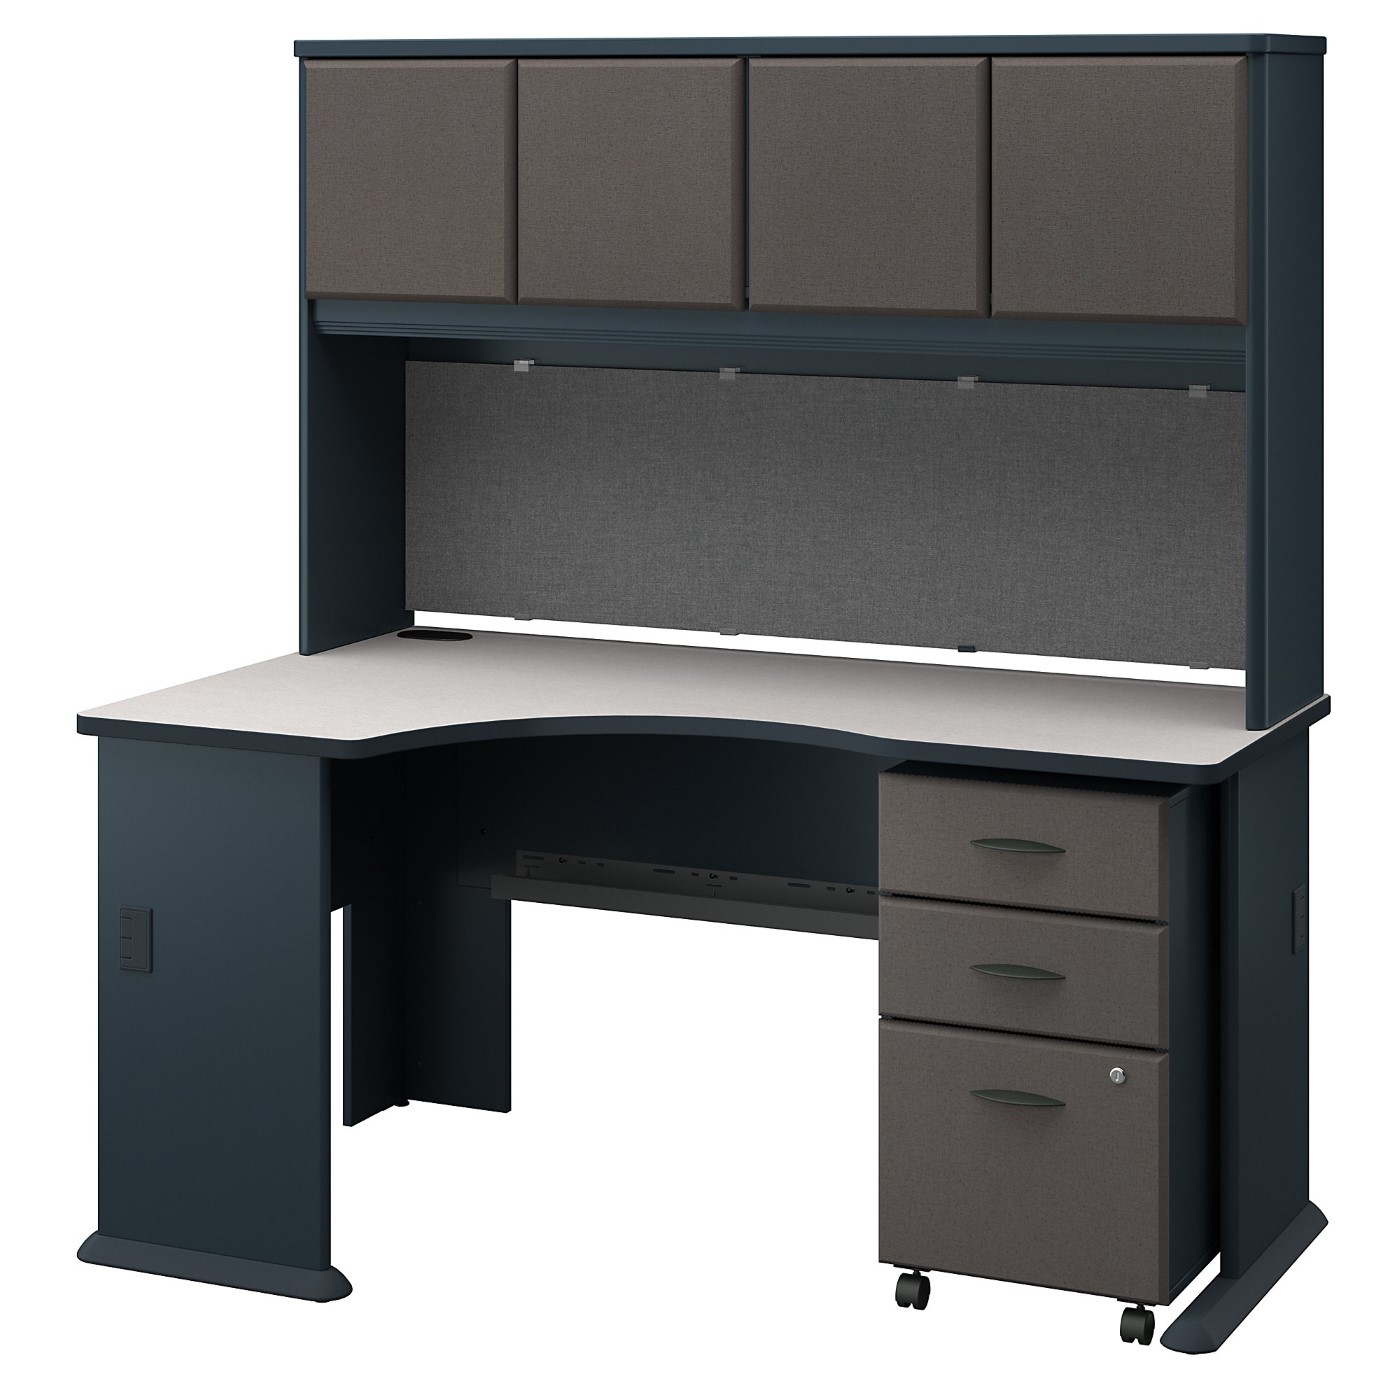 BUSH BUSINESS FURNITURE SERIES A LEFT CORNER DESK WITH HUTCH AND MOBILE FILE CABINET. FREE SHIPPING